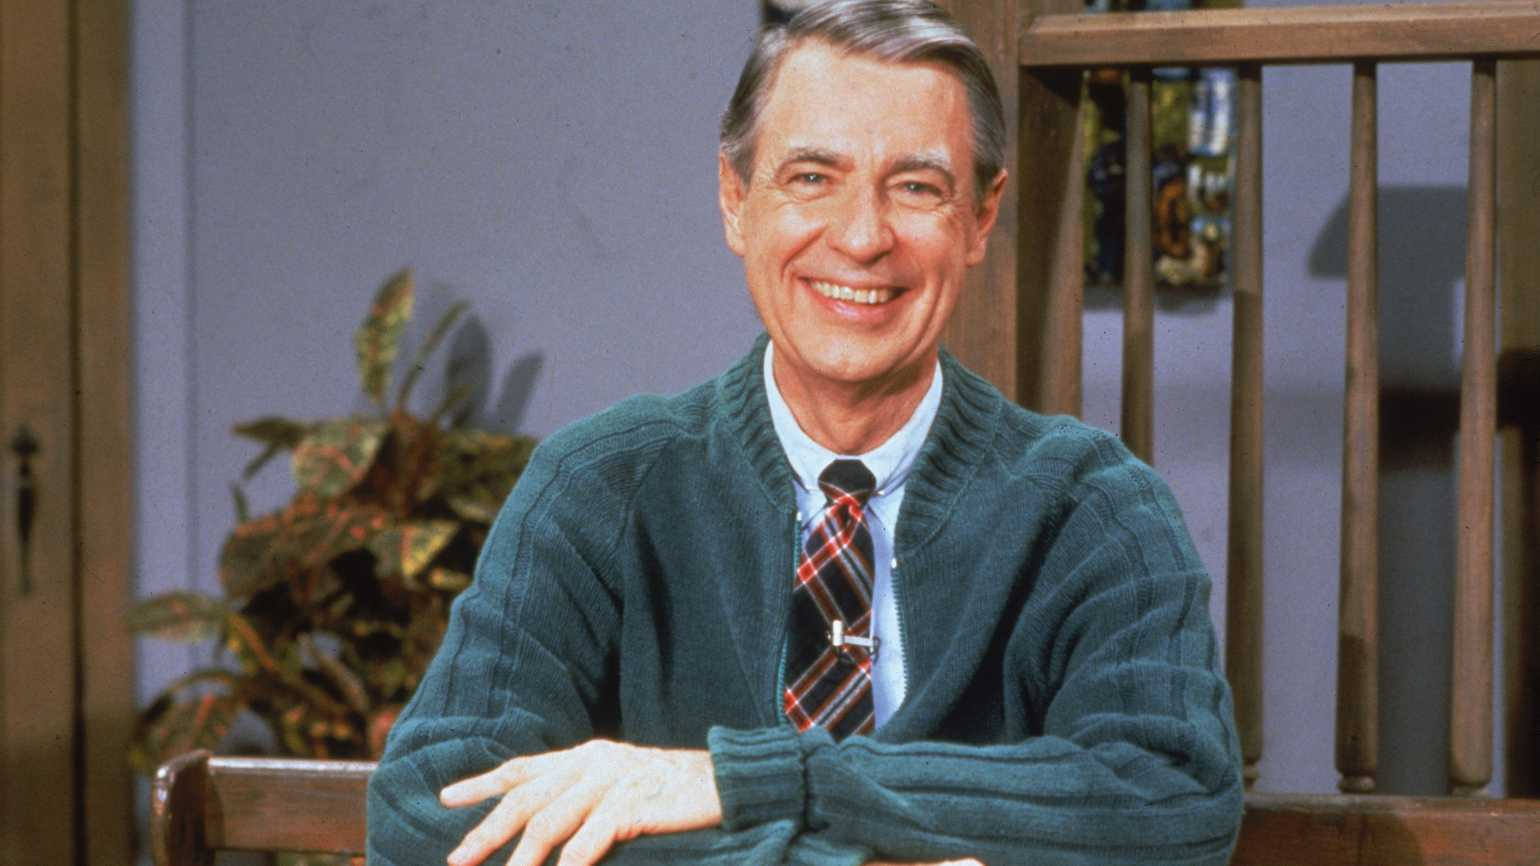 A life lesson from Mister Rogers